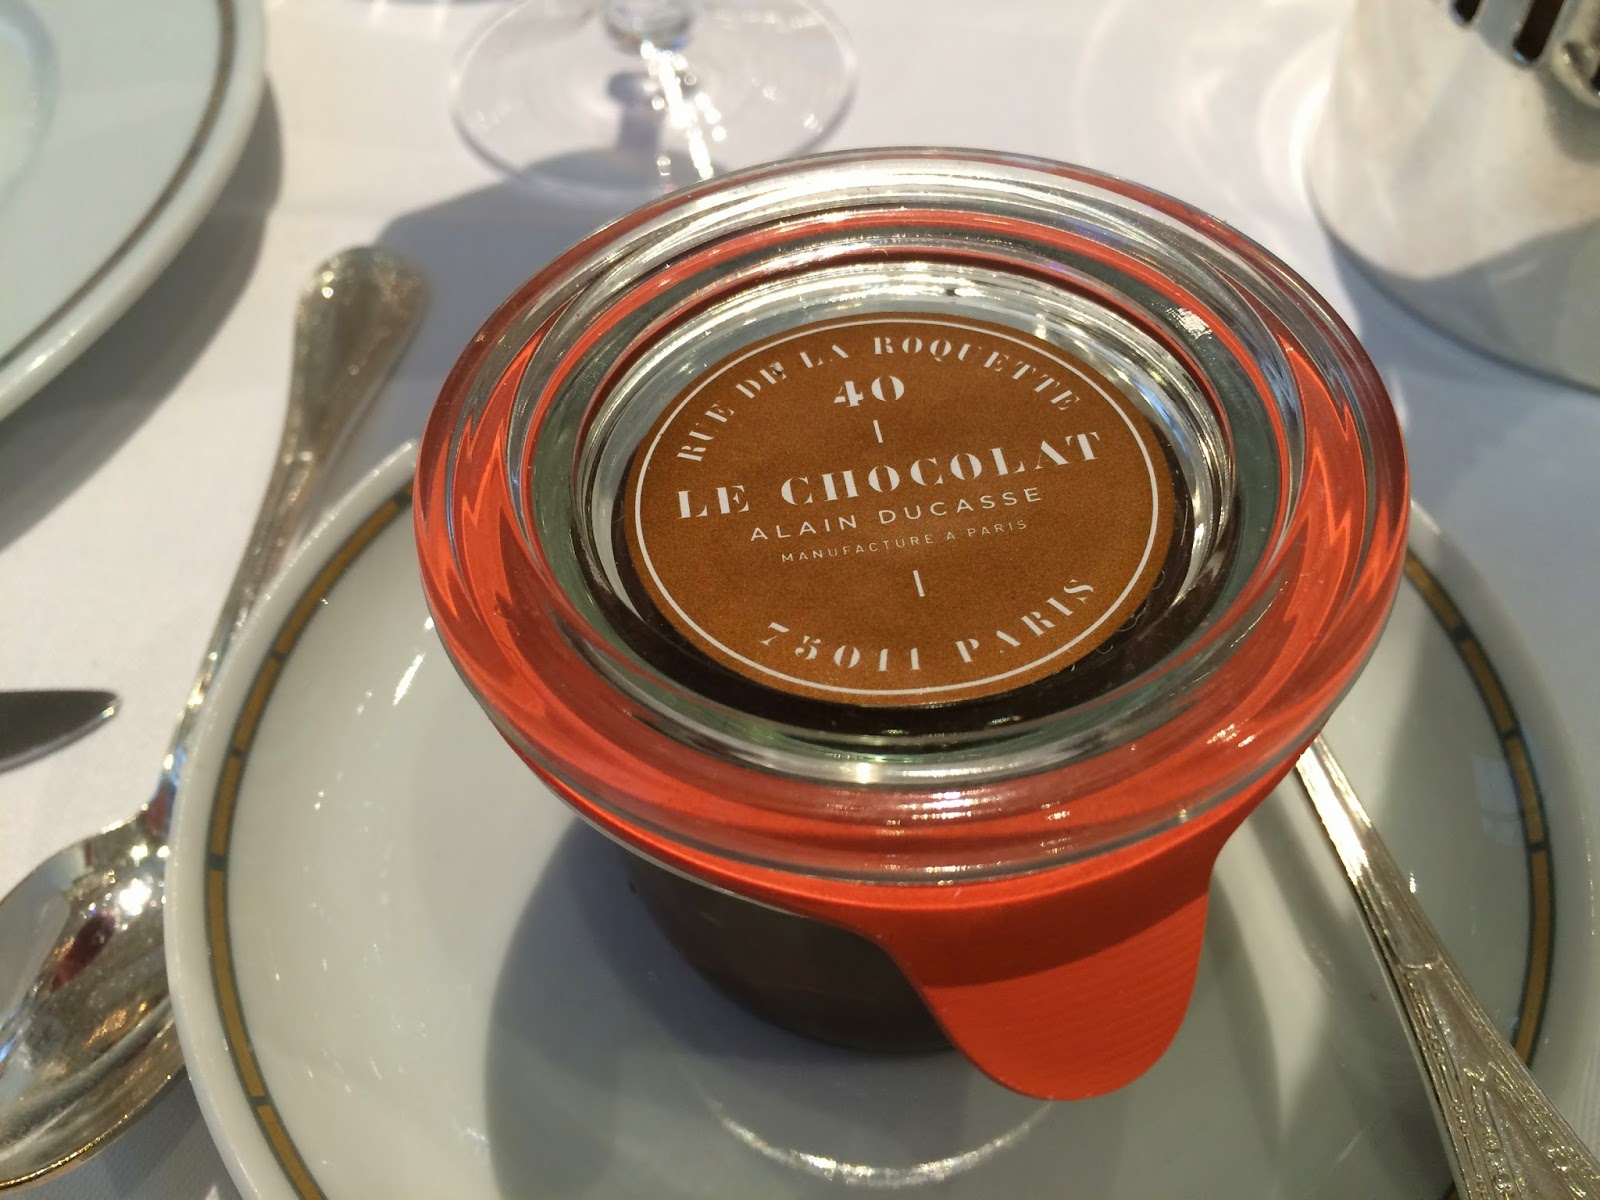 Alain Ducasse chocolate spread at the Haute Couture Brunch, Alain Ducasse au Plaza Athénée, Paris